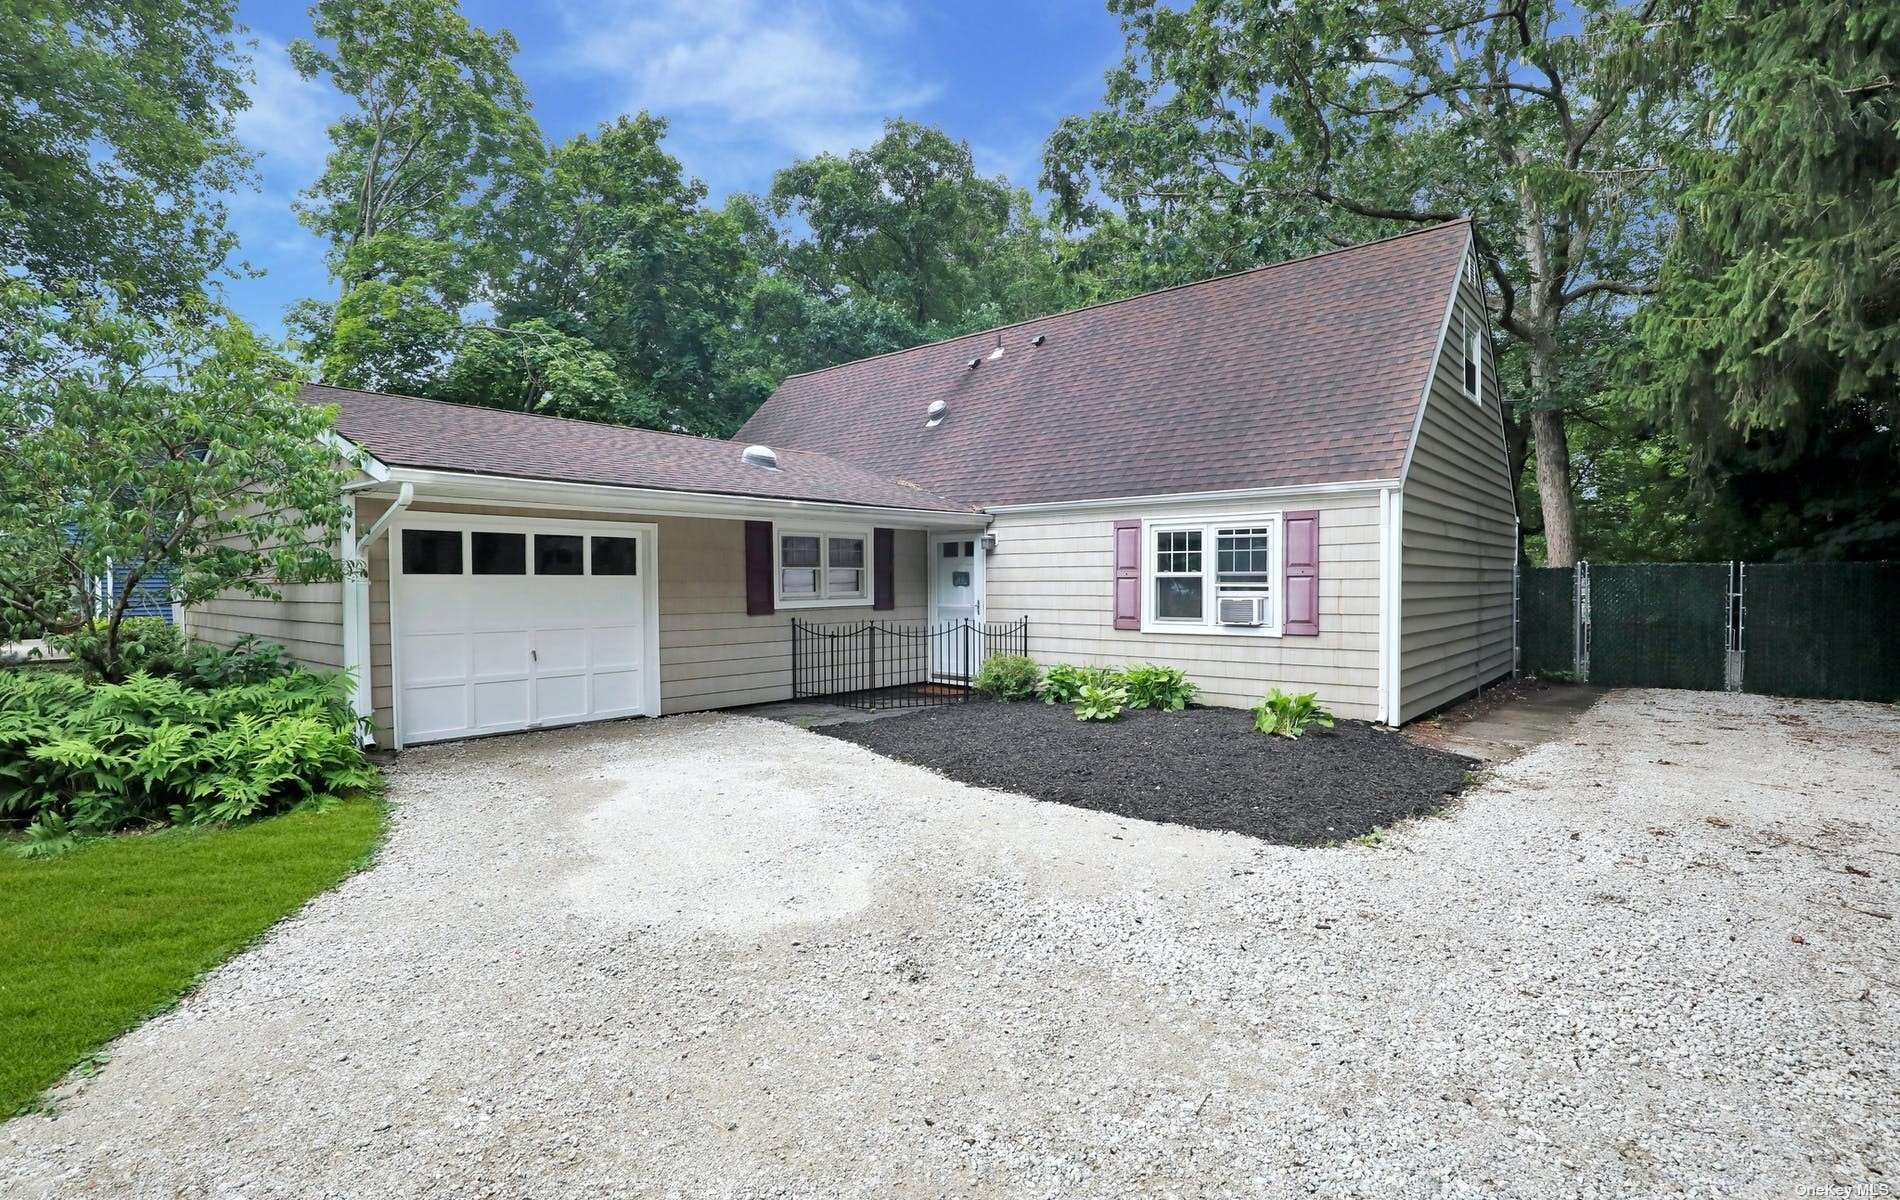 Rare Opportunity to Buy a Home & Keep Horses! Located on Dead End Street in the North Great River Subdivision that Leads Into Connetquot River State Park Preserve. Lovely Farm Ranch with 1,896 SF on an 80' x 300' Fenced Parcel with Stable for Your Horse with Water and Electric. Enter Front Door Into Living Room Which Connects with Dining Room, Eat-in-Kitchen with Laundry Area & French Doors to Backyard Patio, Den with Tunnel Skylight & Entry Into 1-Car Attached Garage with 150 Amp Electric, Boiler Area with Oil Tank, Master Bedroom with 1/2 Bath, 2 More Bedrooms & Full Bath with Tub & Tunnel Skylight. Full Staircase to Easily Finished Unfinished Attic with High Ceiling, Full Size Windows & 2 Operable Skylights so it Can Easily Be Finished Into Living Space. 8-Year Old Architectural Roof.